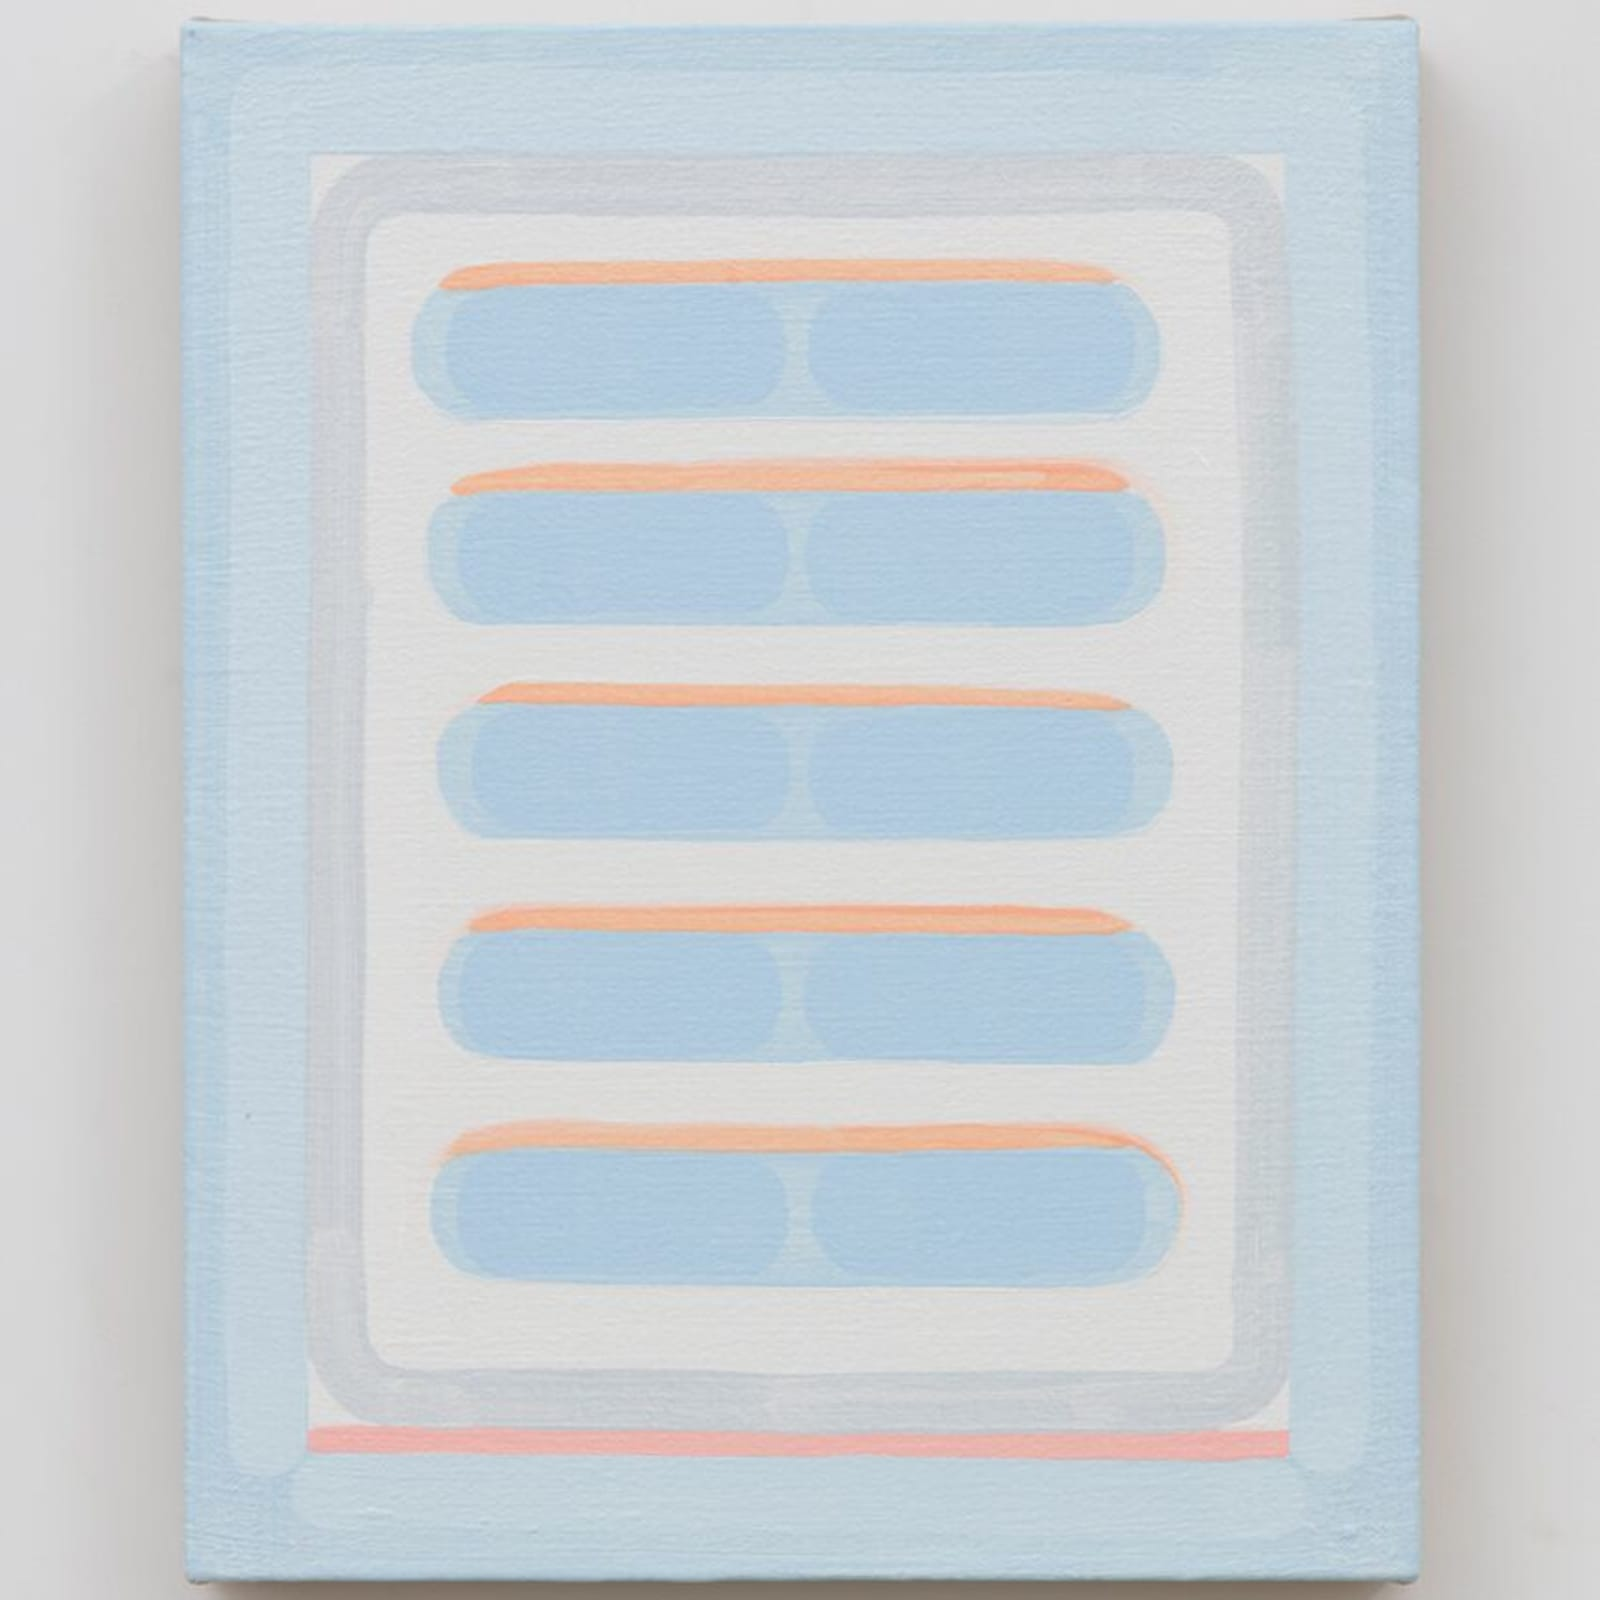 Lily Stockman  Glassell Park Pool, 2018  Oil on linen  14 x 11 inches